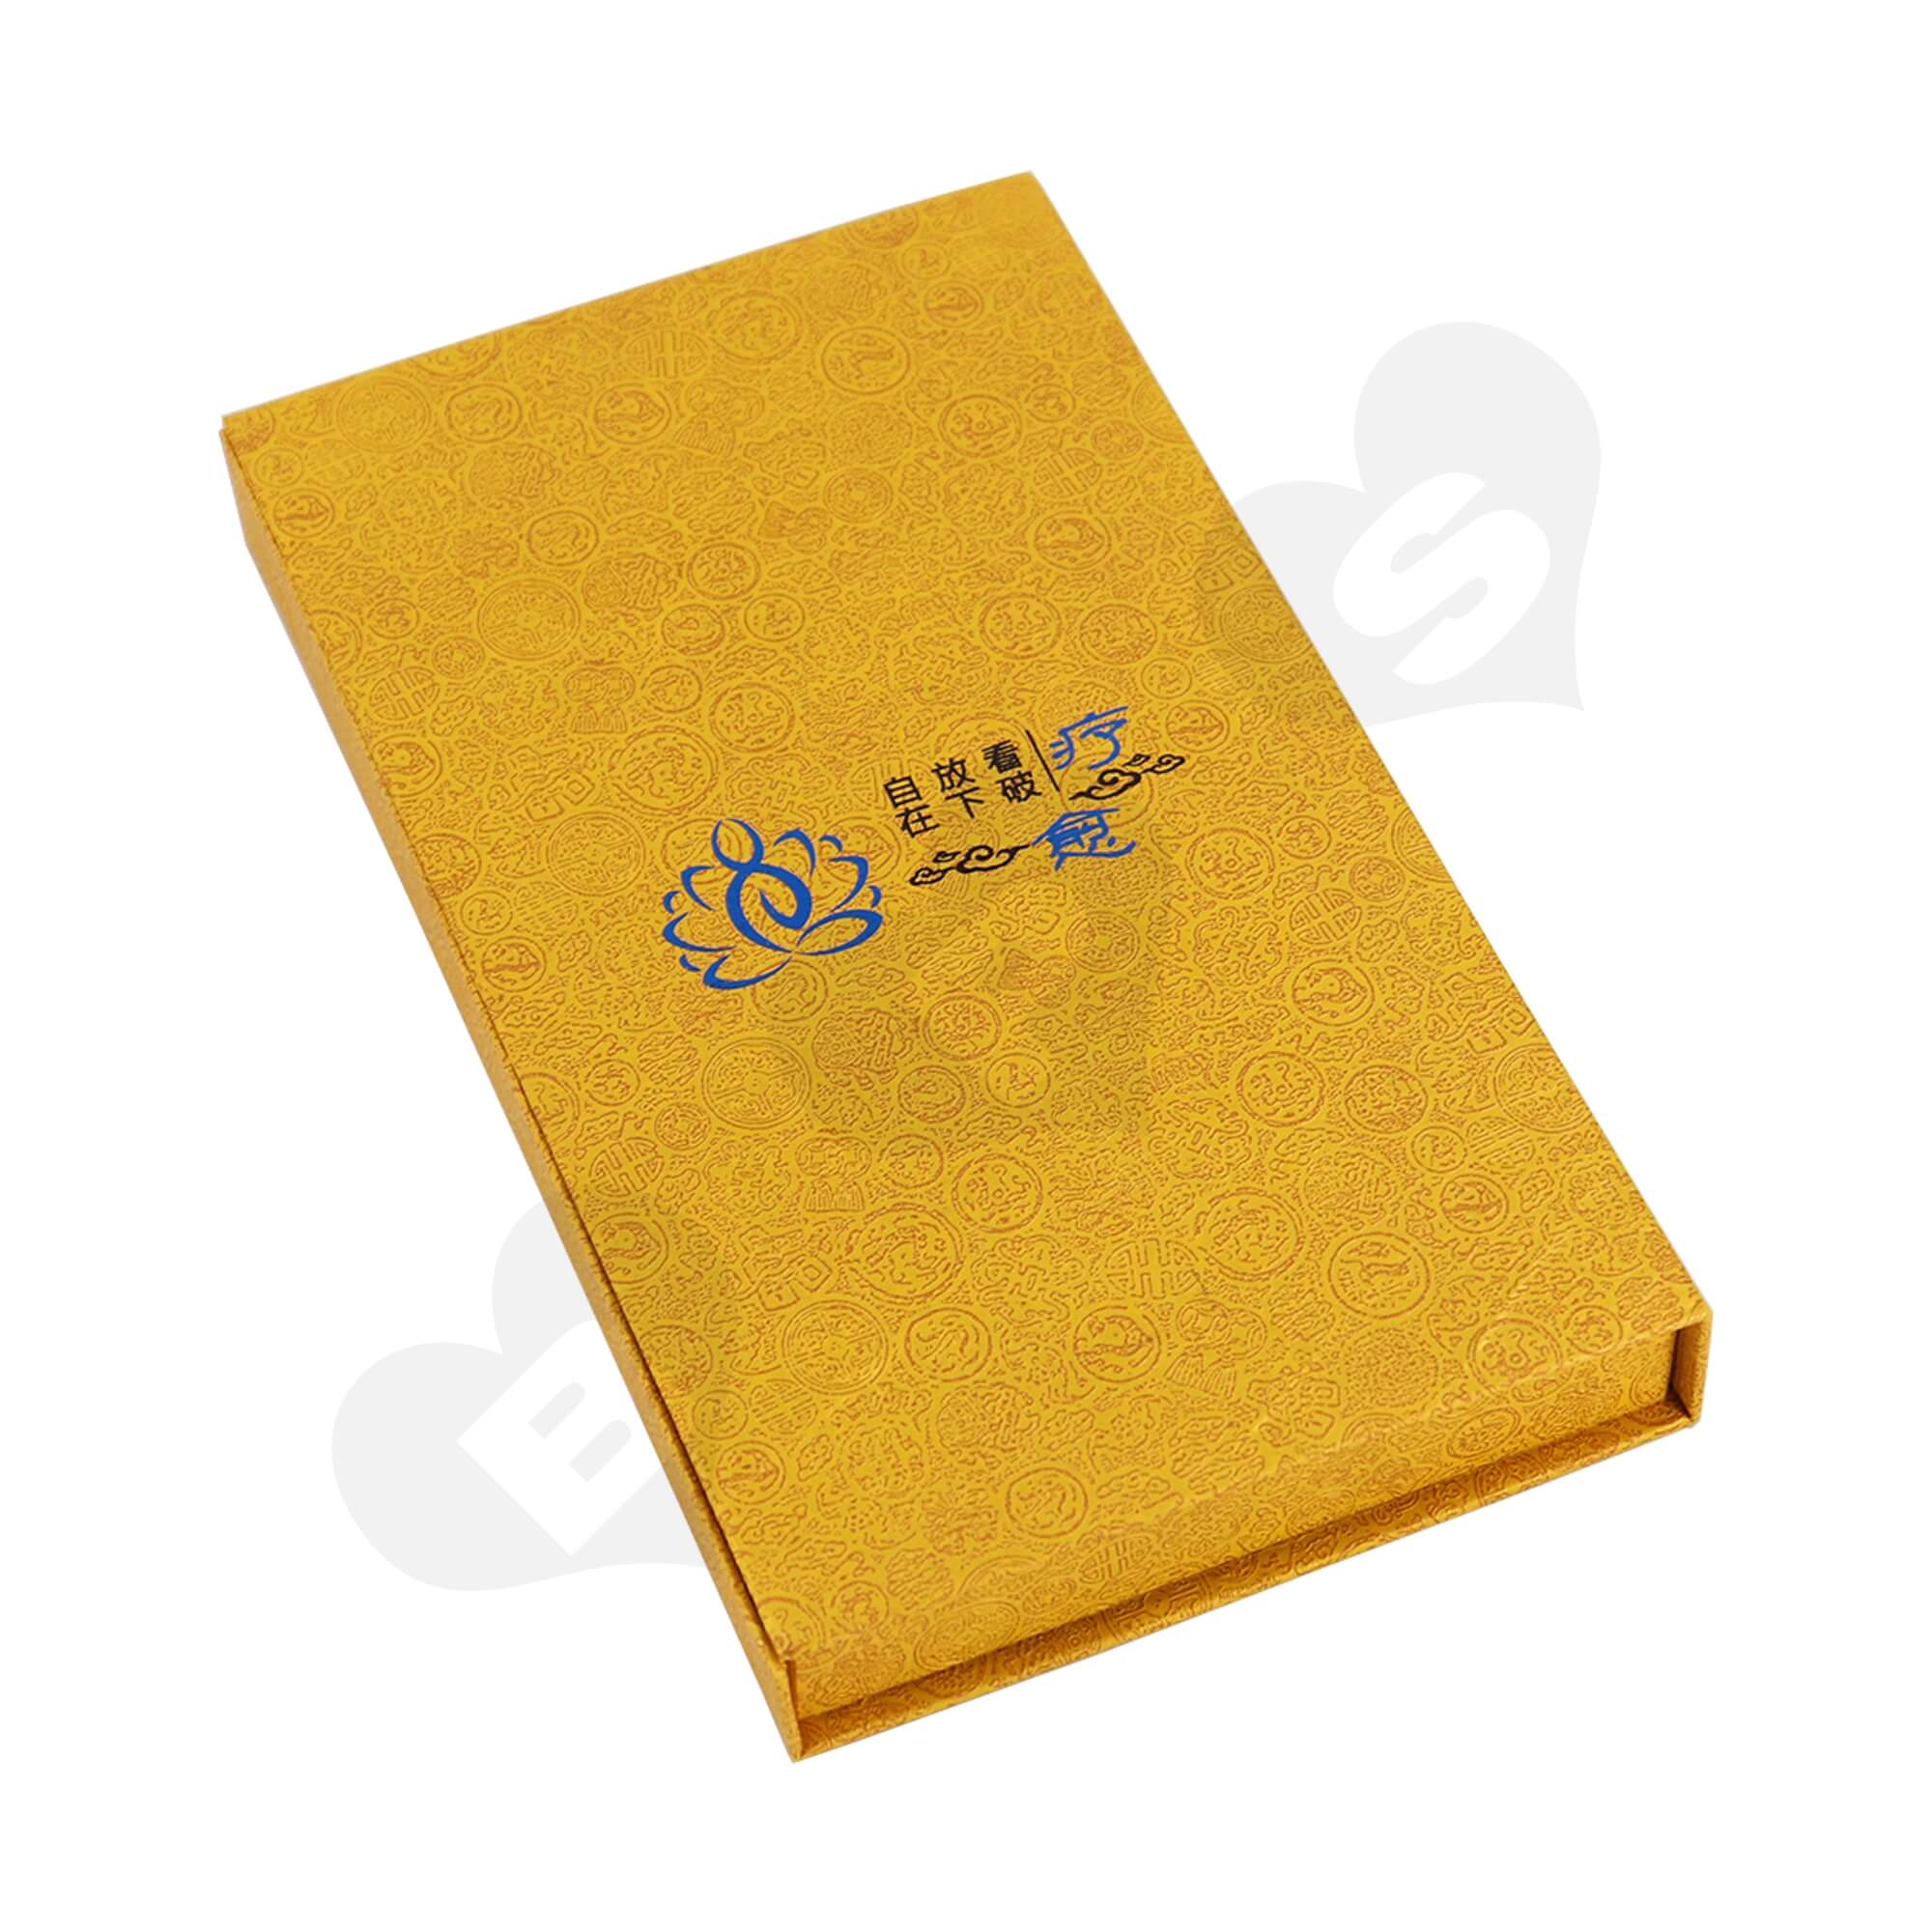 Book Shape Gift Box For Packing Blended Fragrance Side View Four